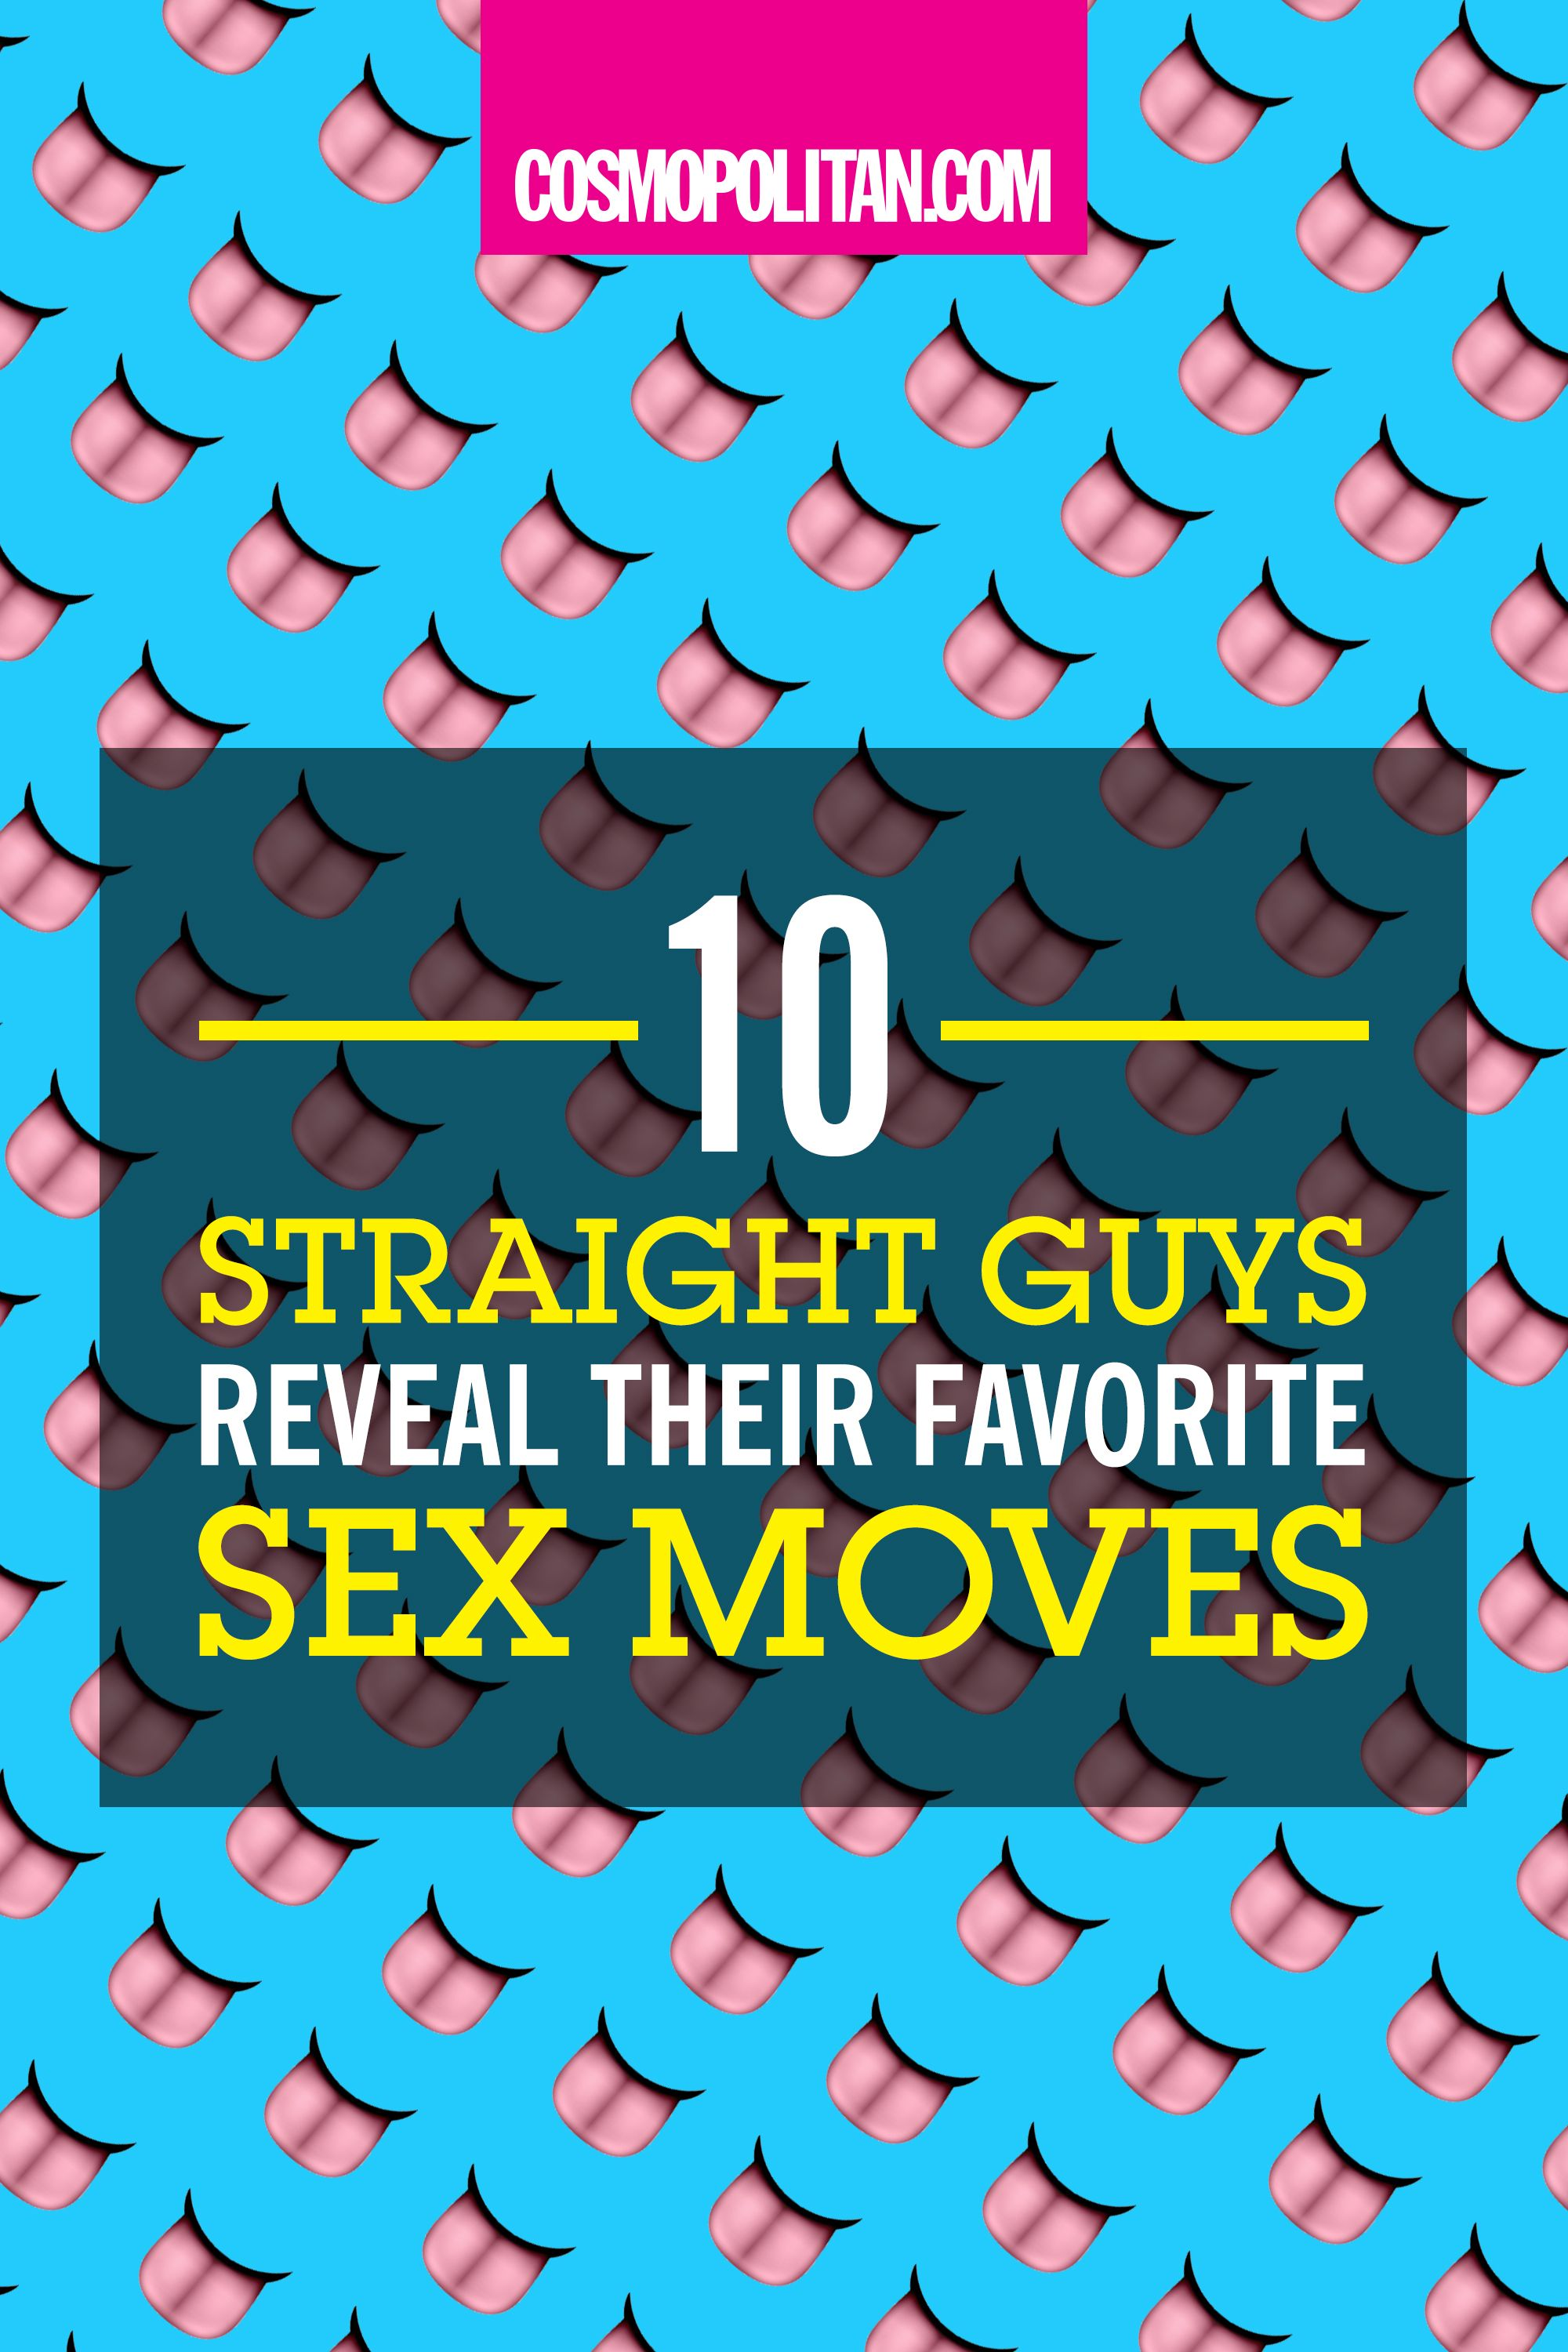 Guys favorite movements during sex